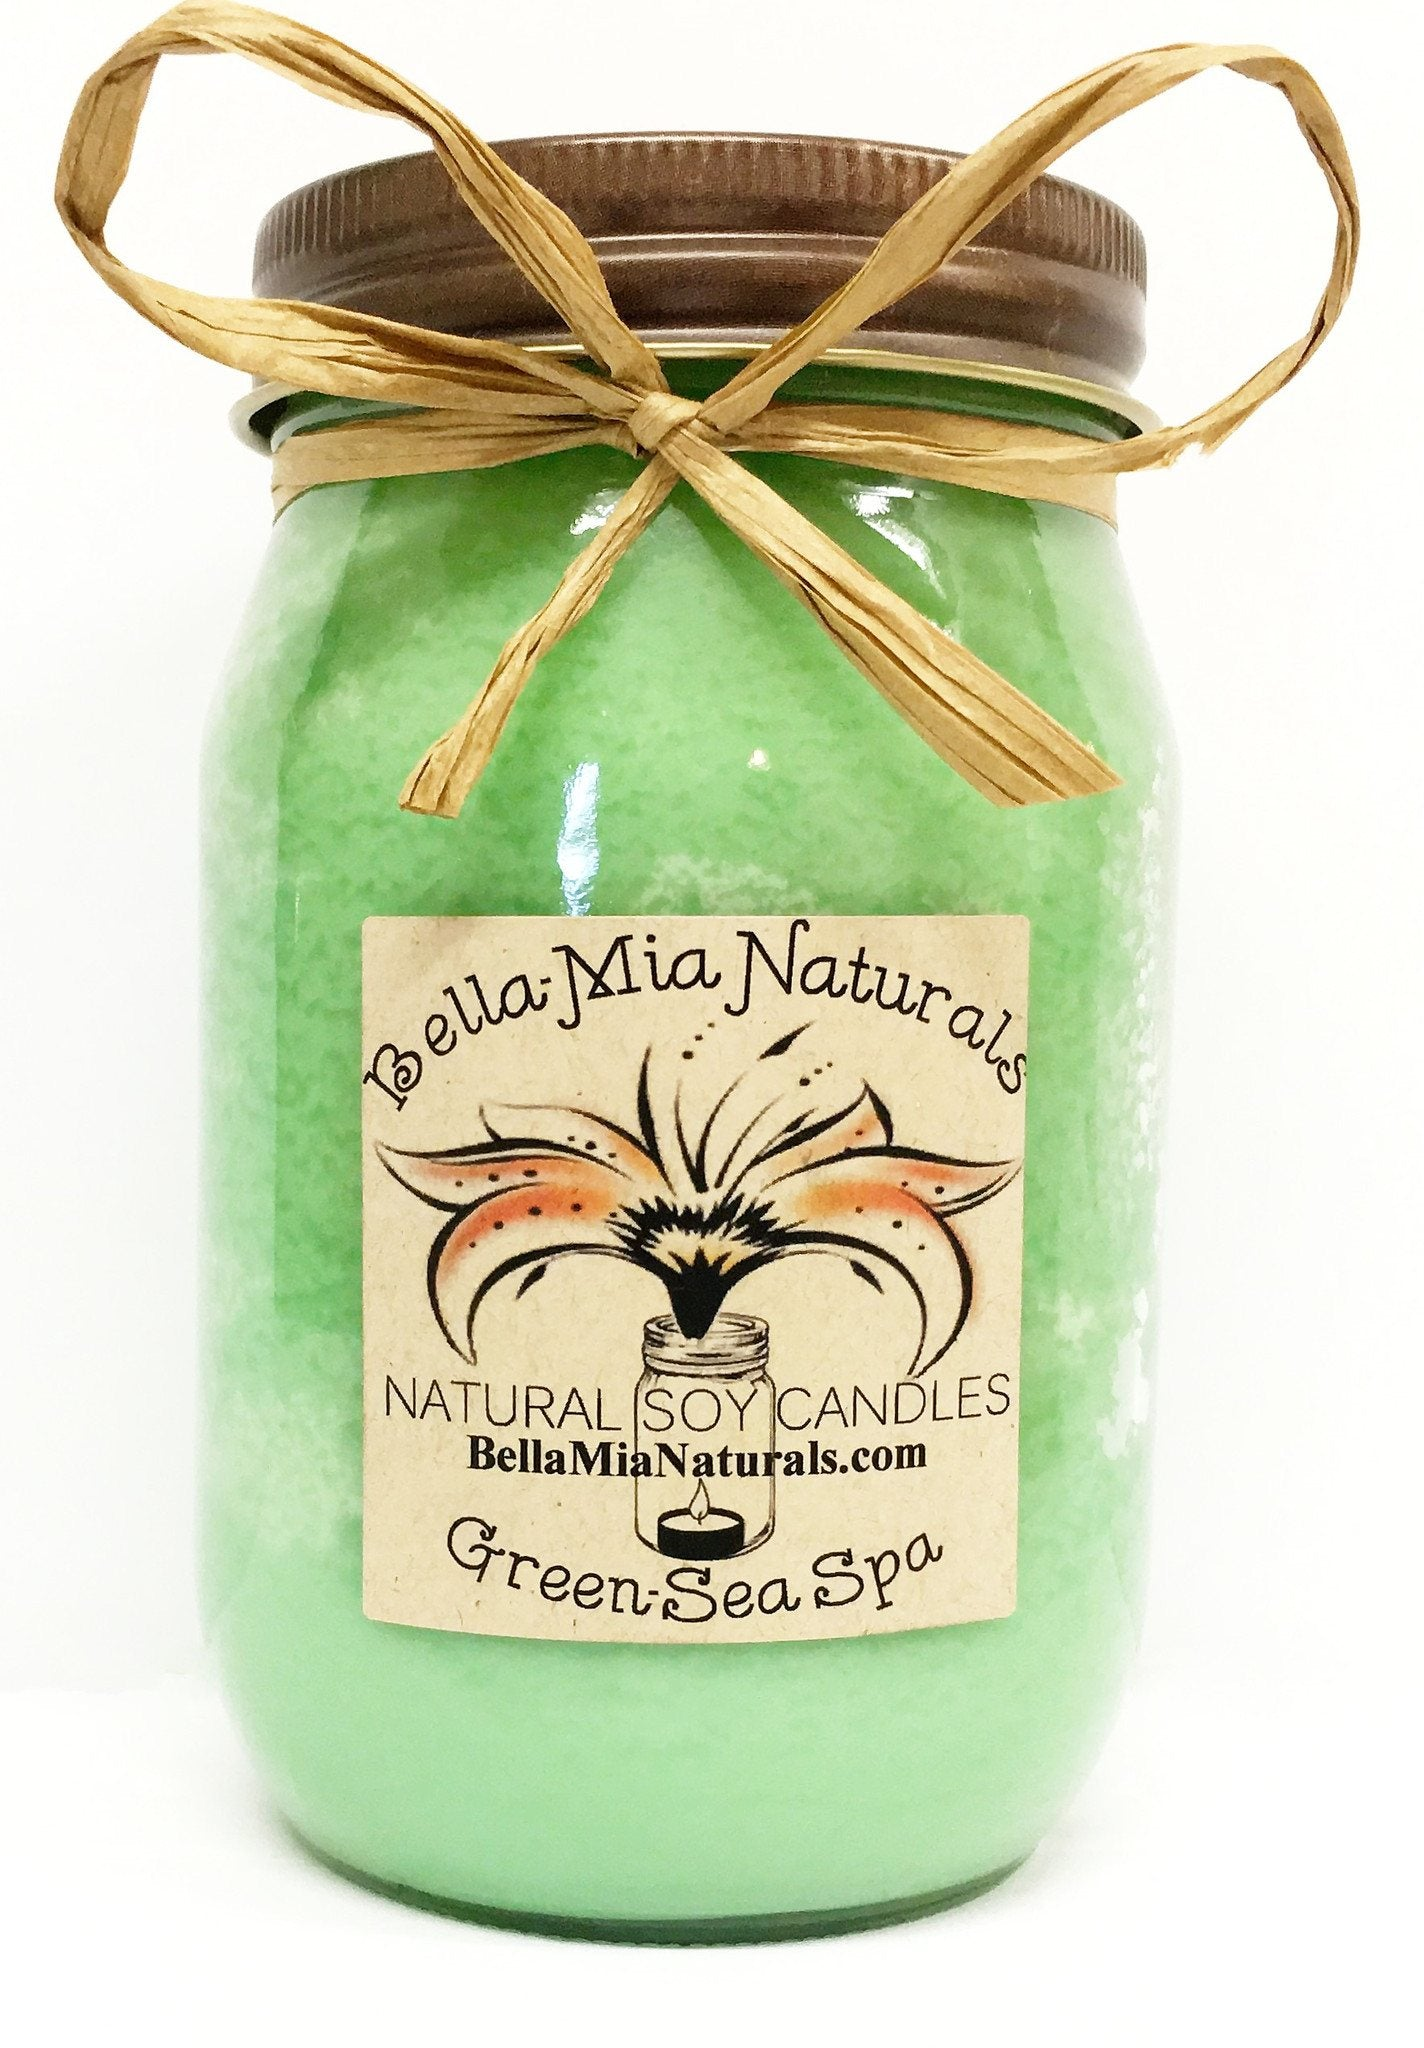 Green-Sea Spa Natural Hand Poured Soy Candles - Pint - Bella-Mia Naturals All Natural Soy Candles & Lip Balms - 2